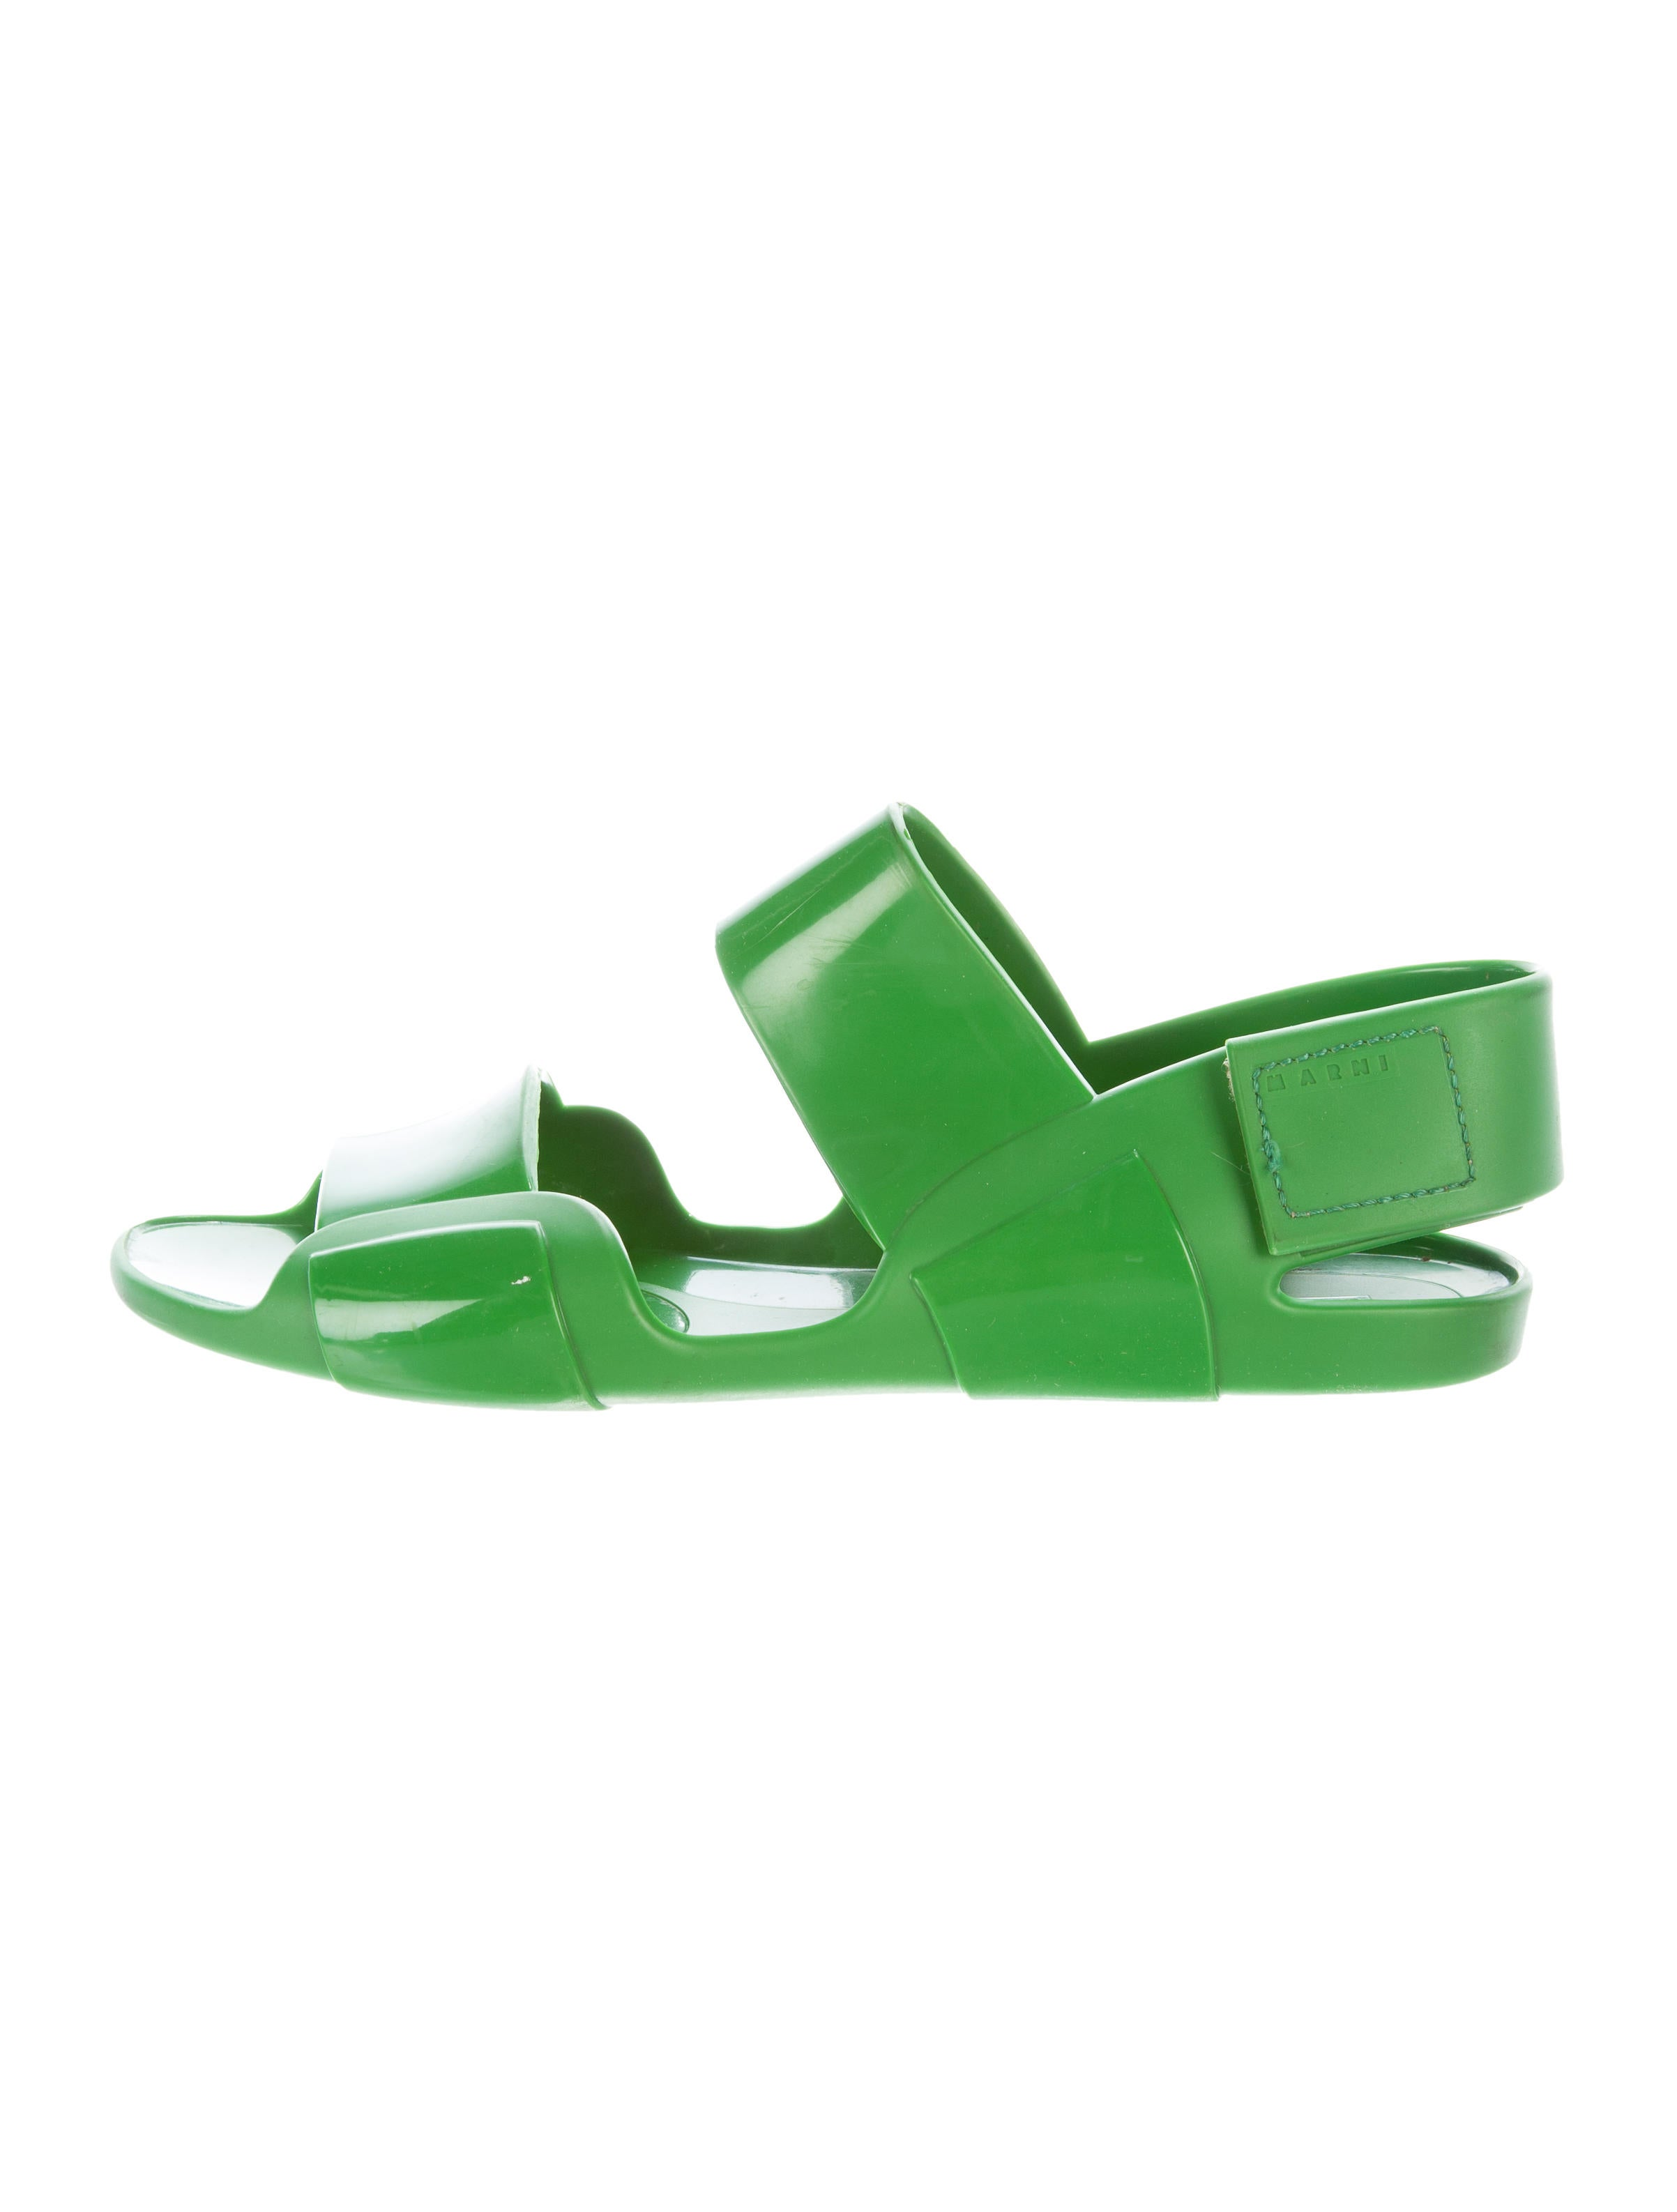 Marni Rubber Slingback Sandals with credit card for sale collections sale online 2NYRGiufGJ